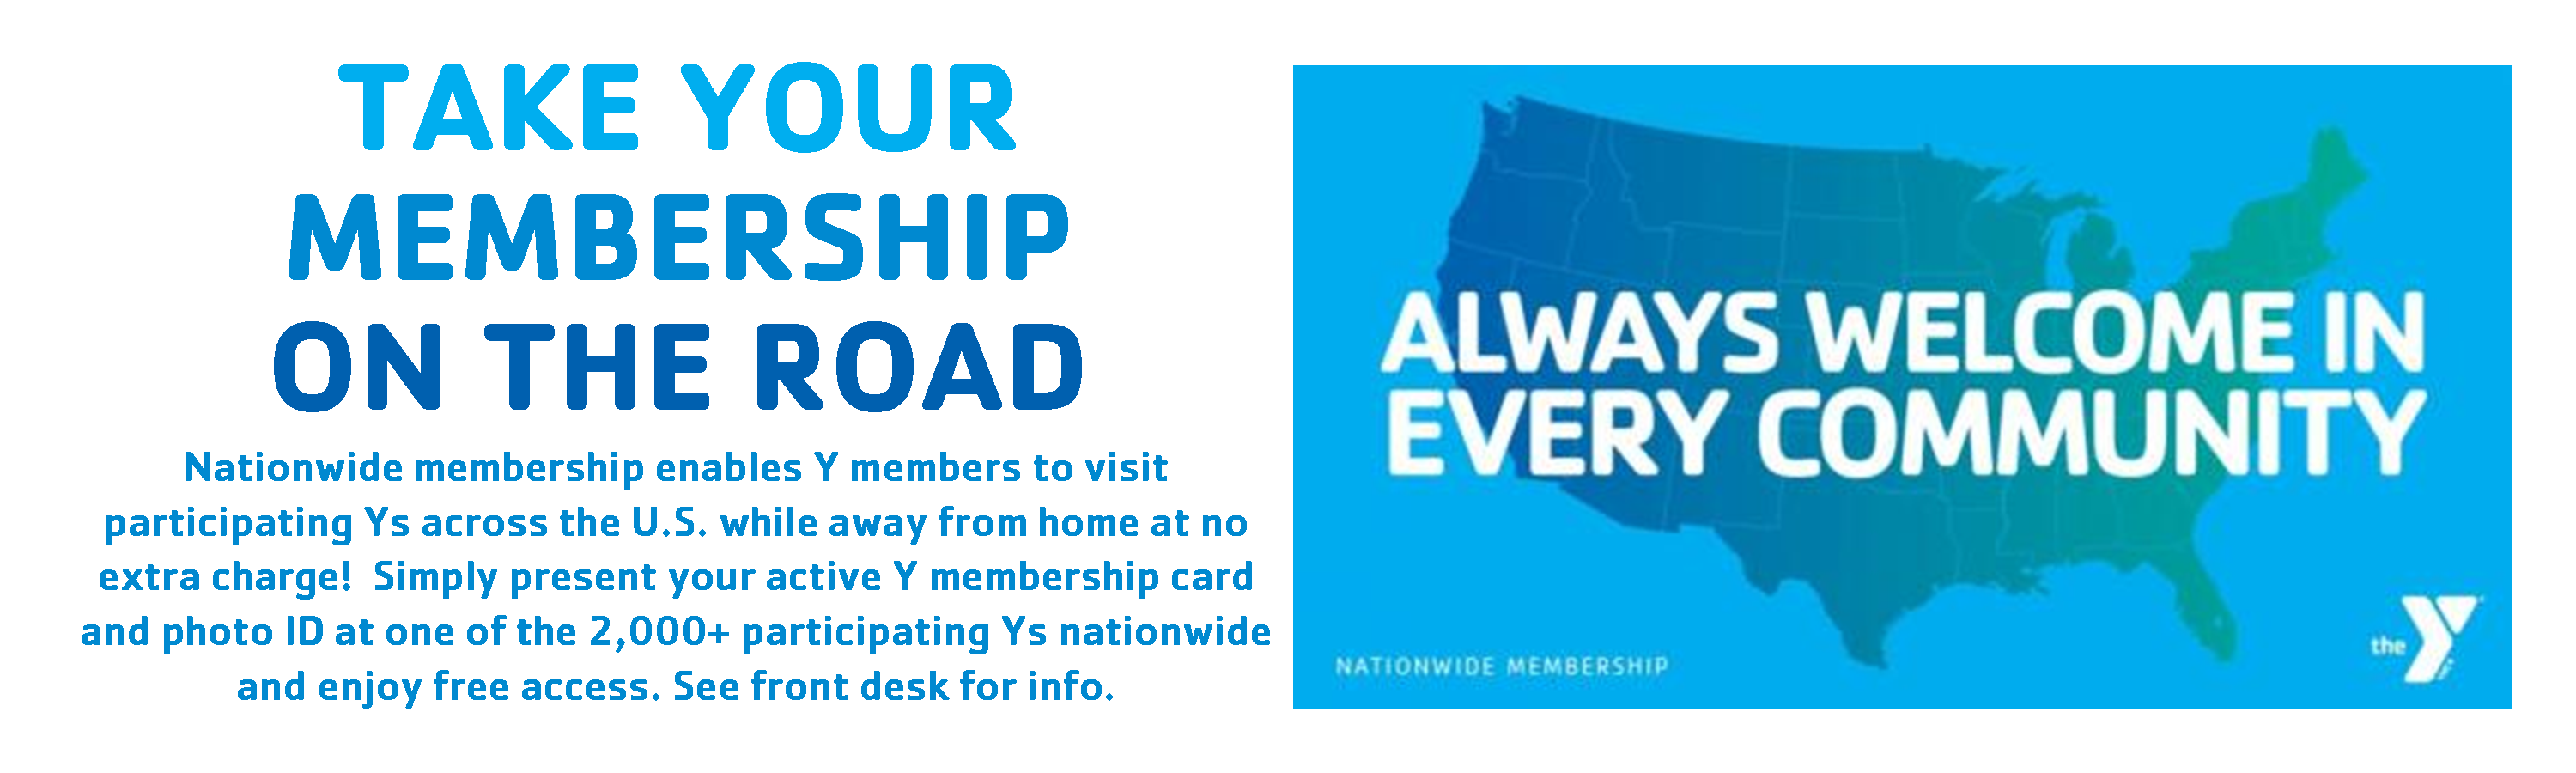 NATIONWIDE MEMBERSHIP